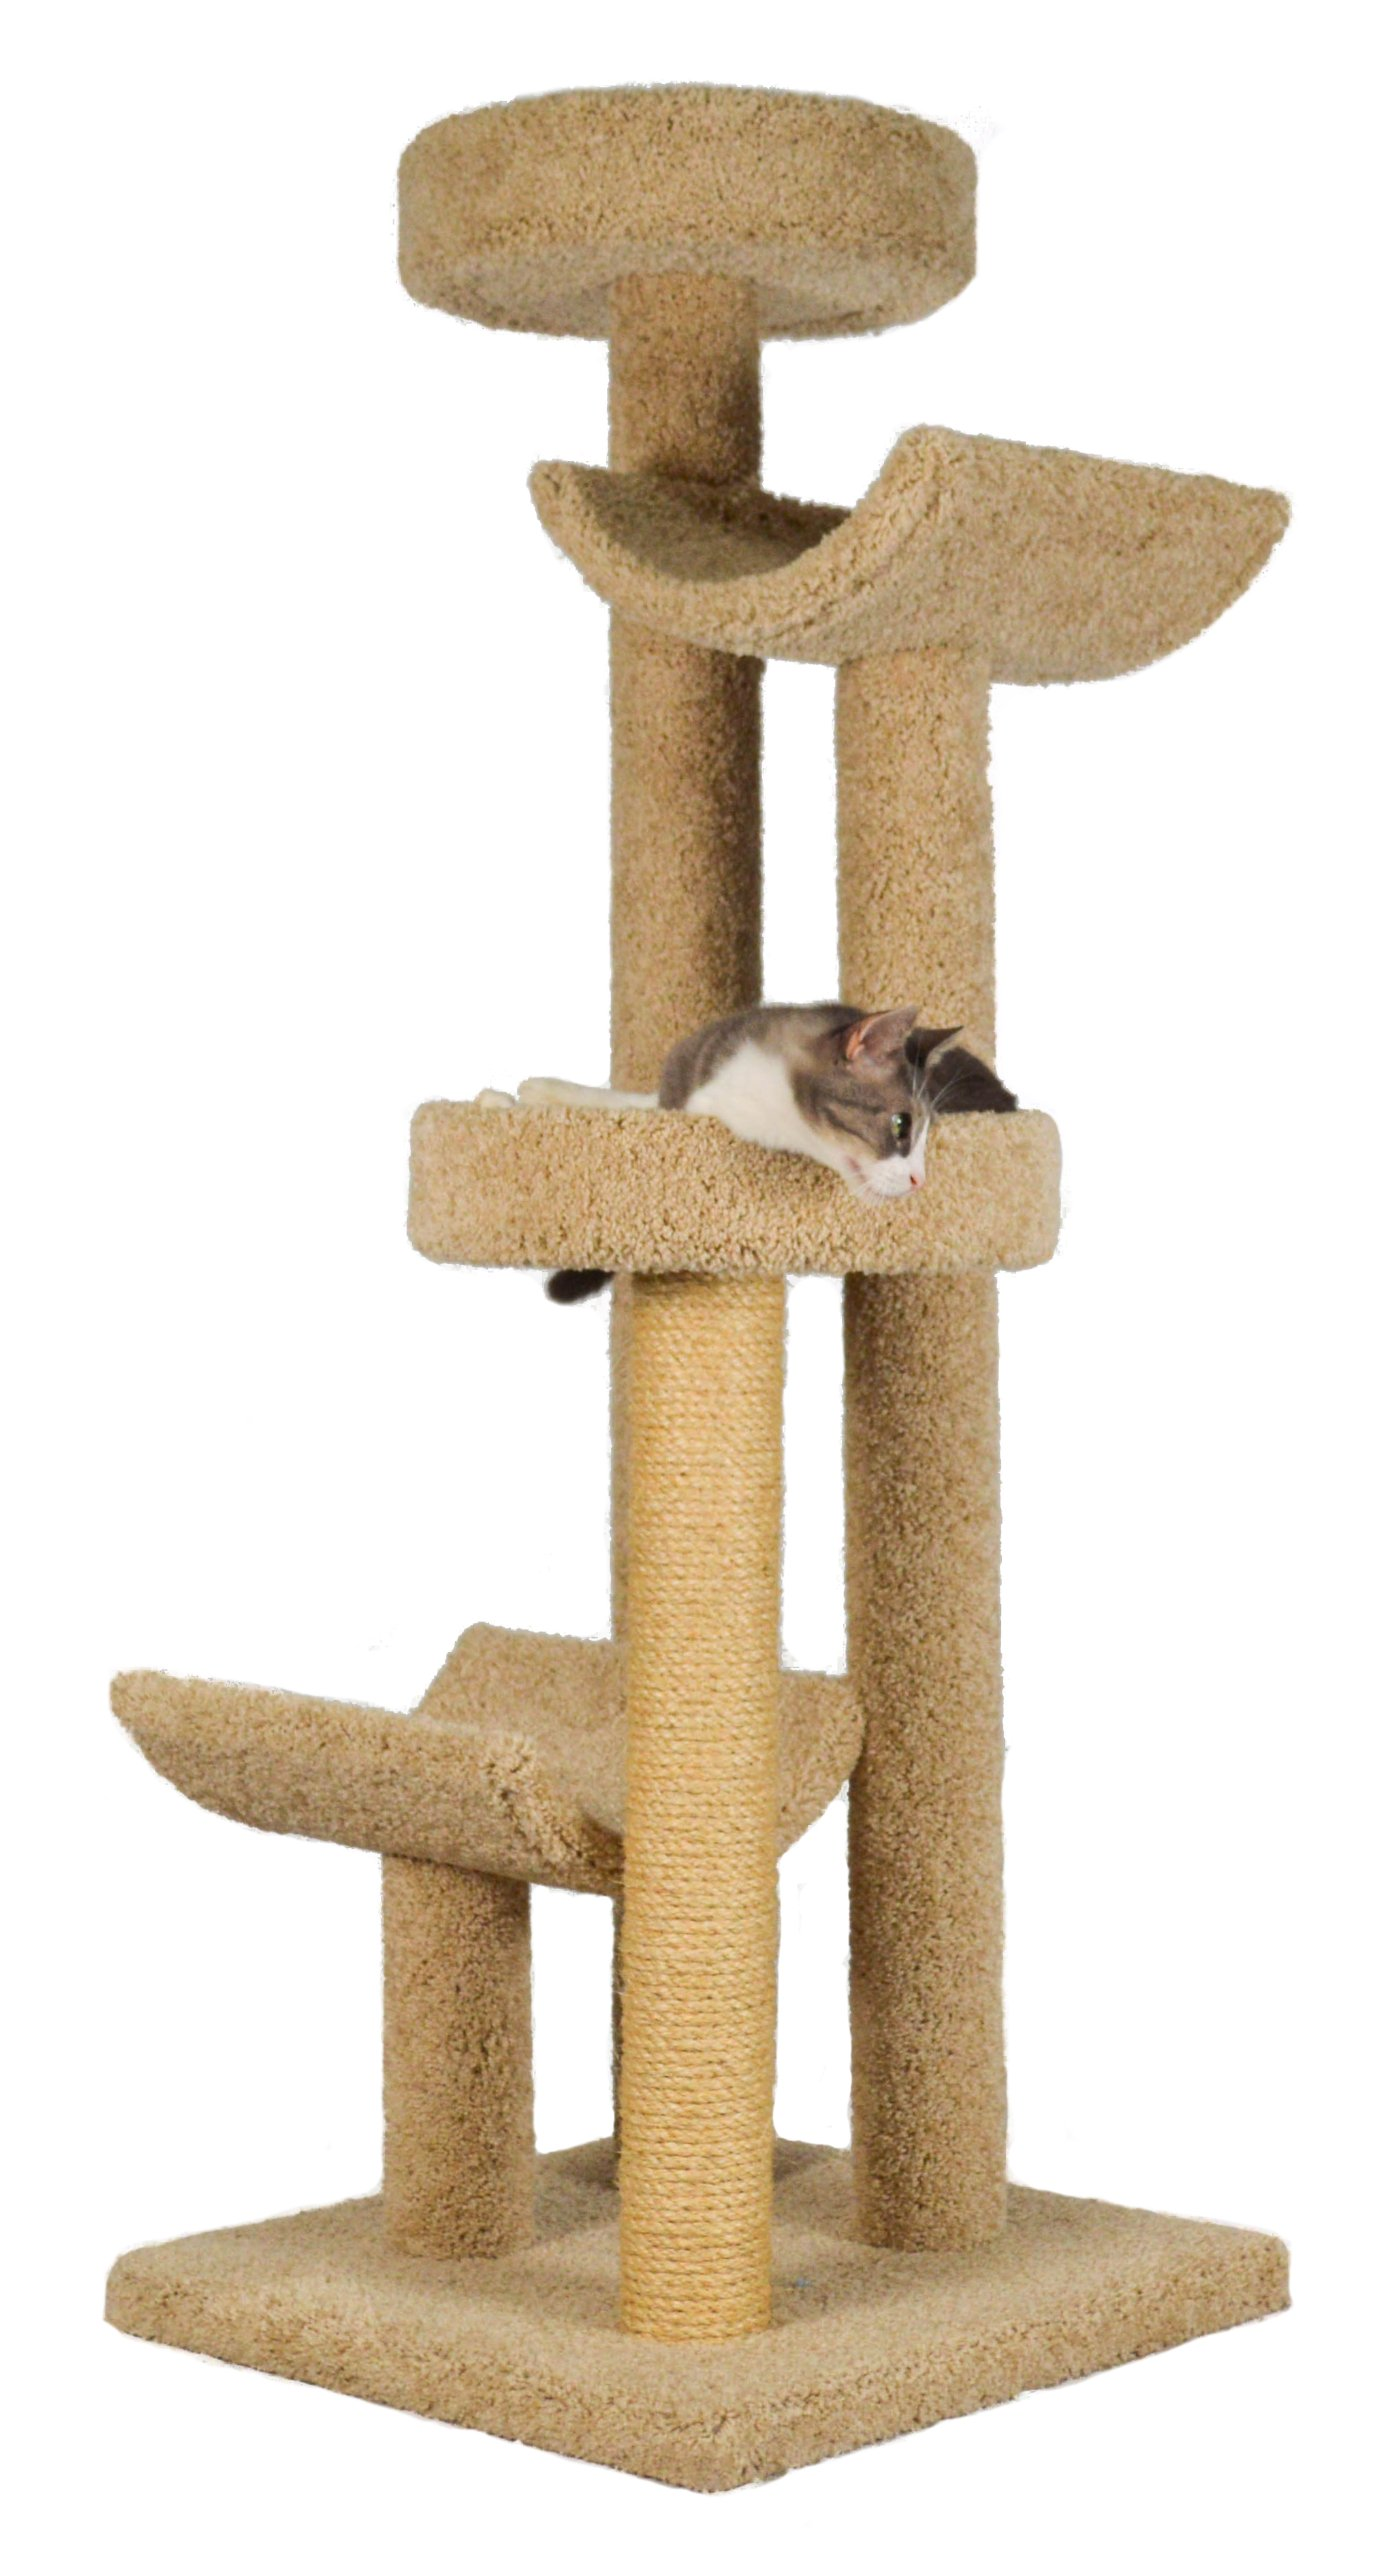 Product details for Cat tree steps